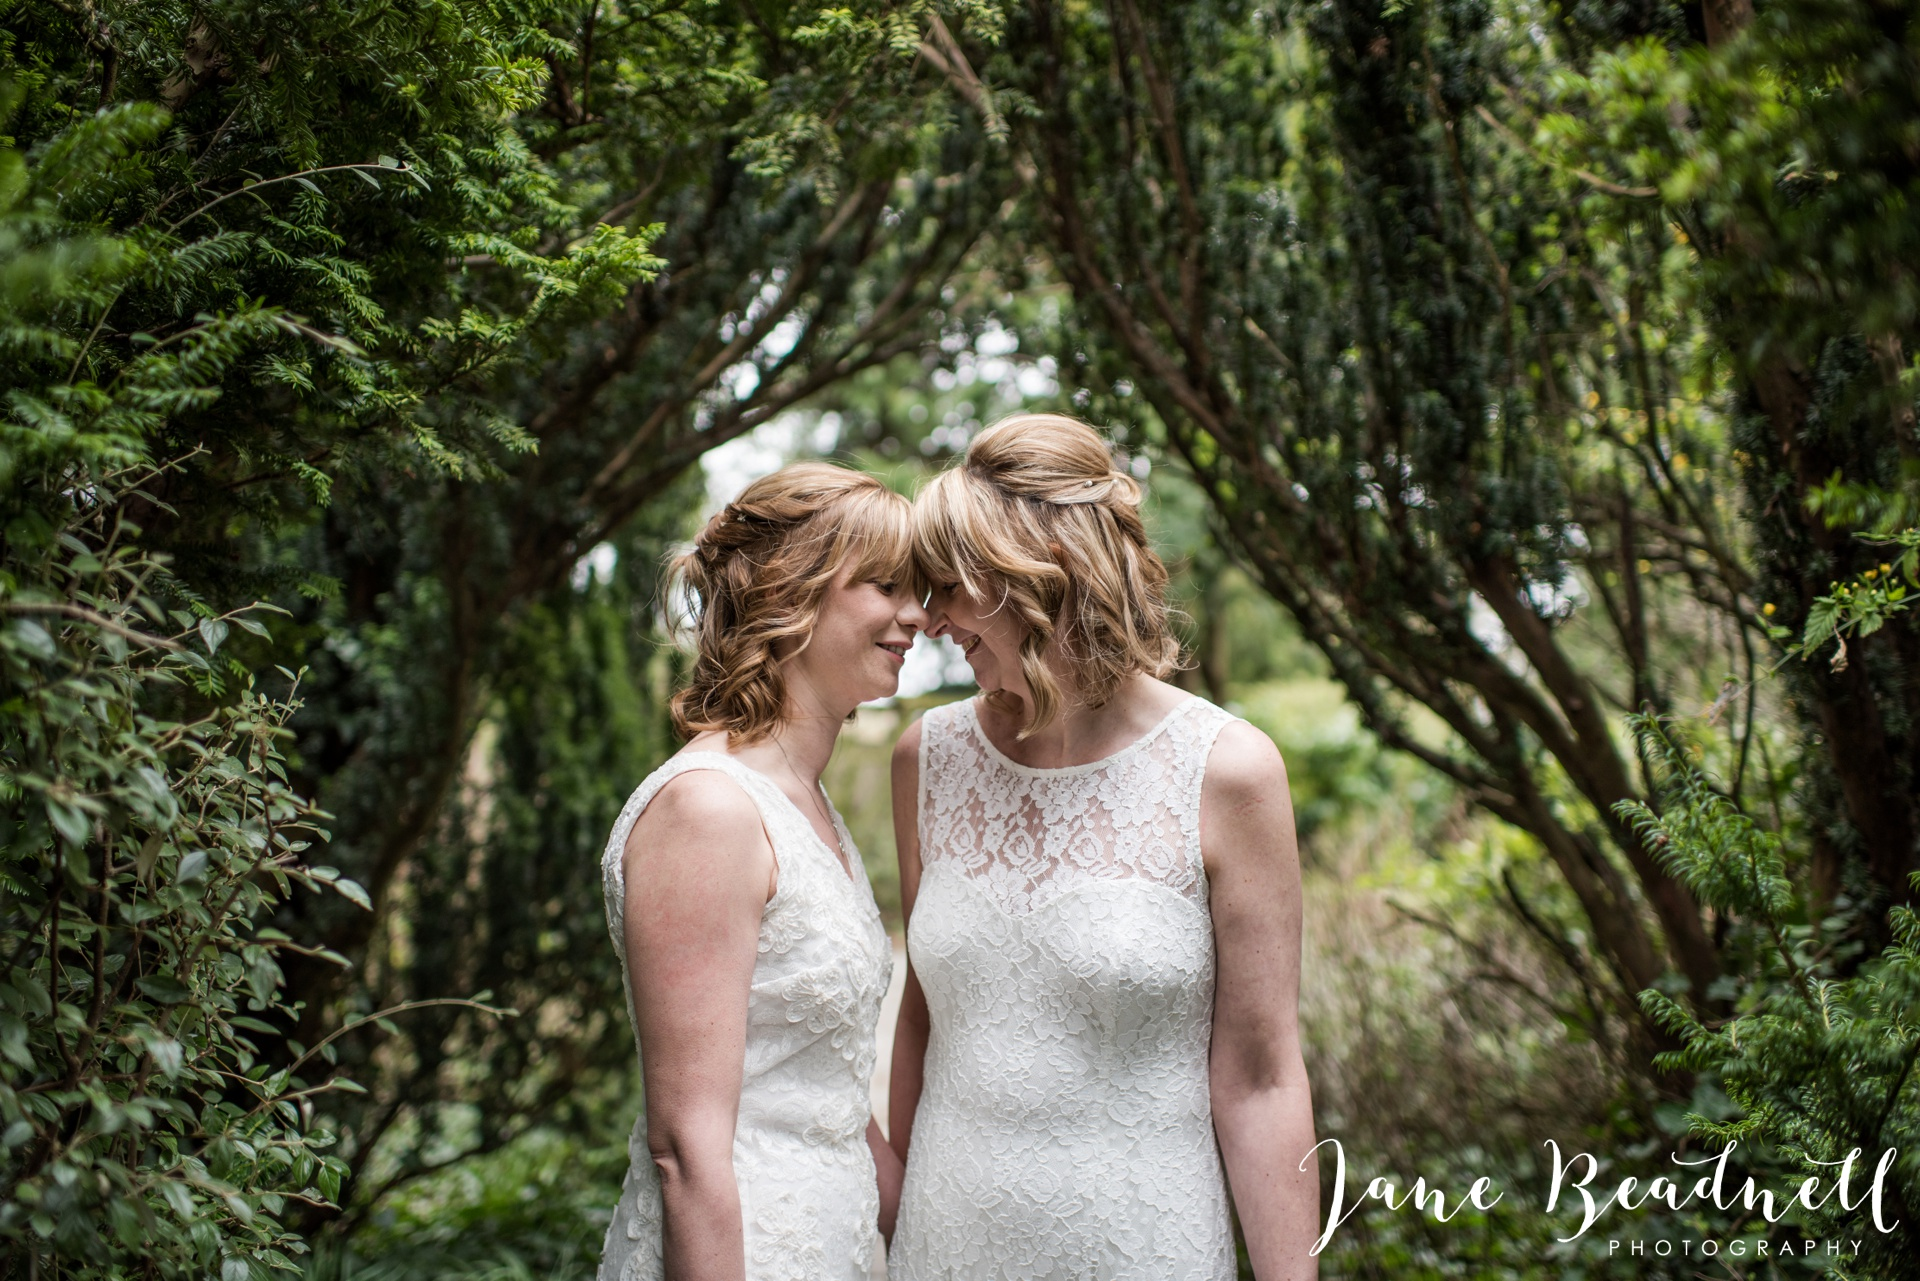 Burnby Hall Gardens wedding photography by Jane Beadnell Photography_0002